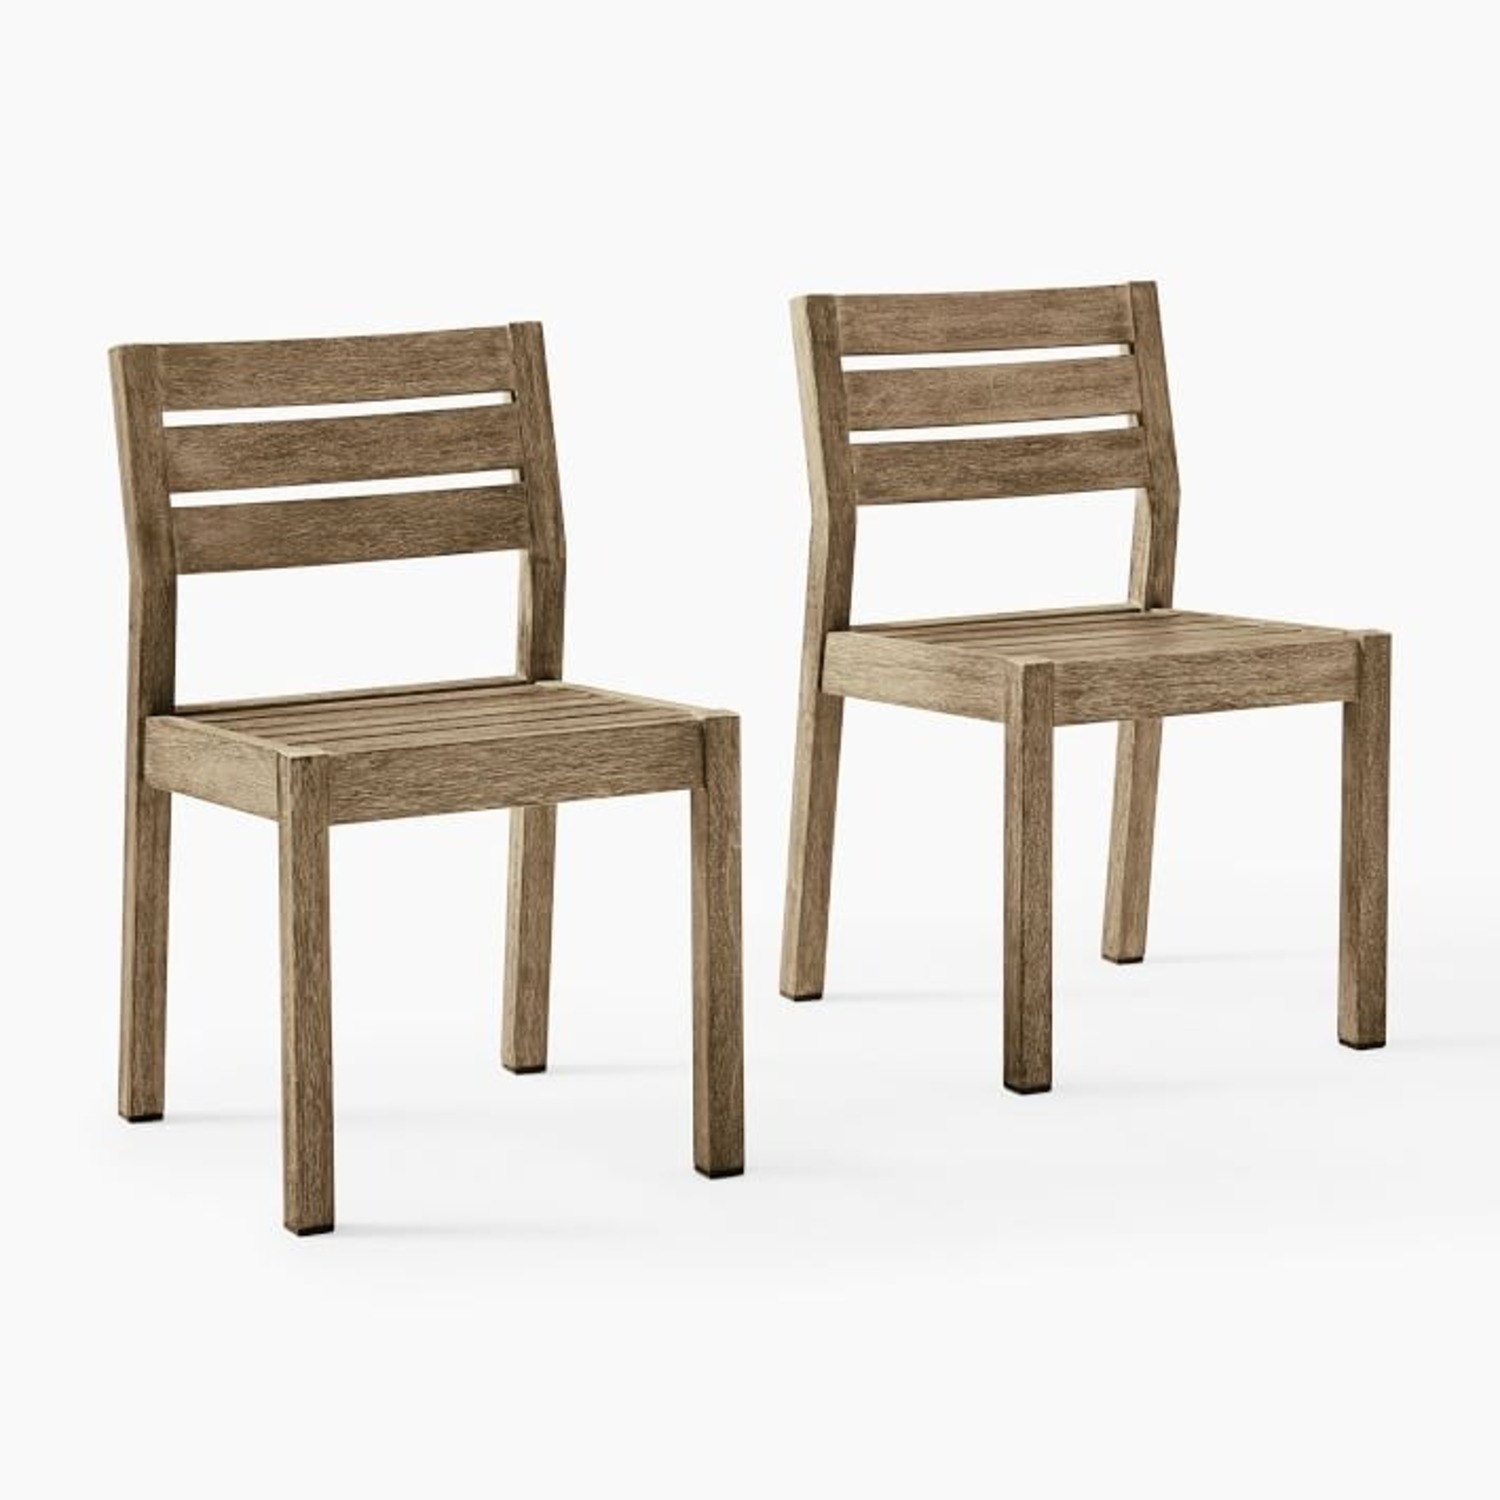 West Elm Portside Outdoor Dining Chair, Set of 2 - image-2